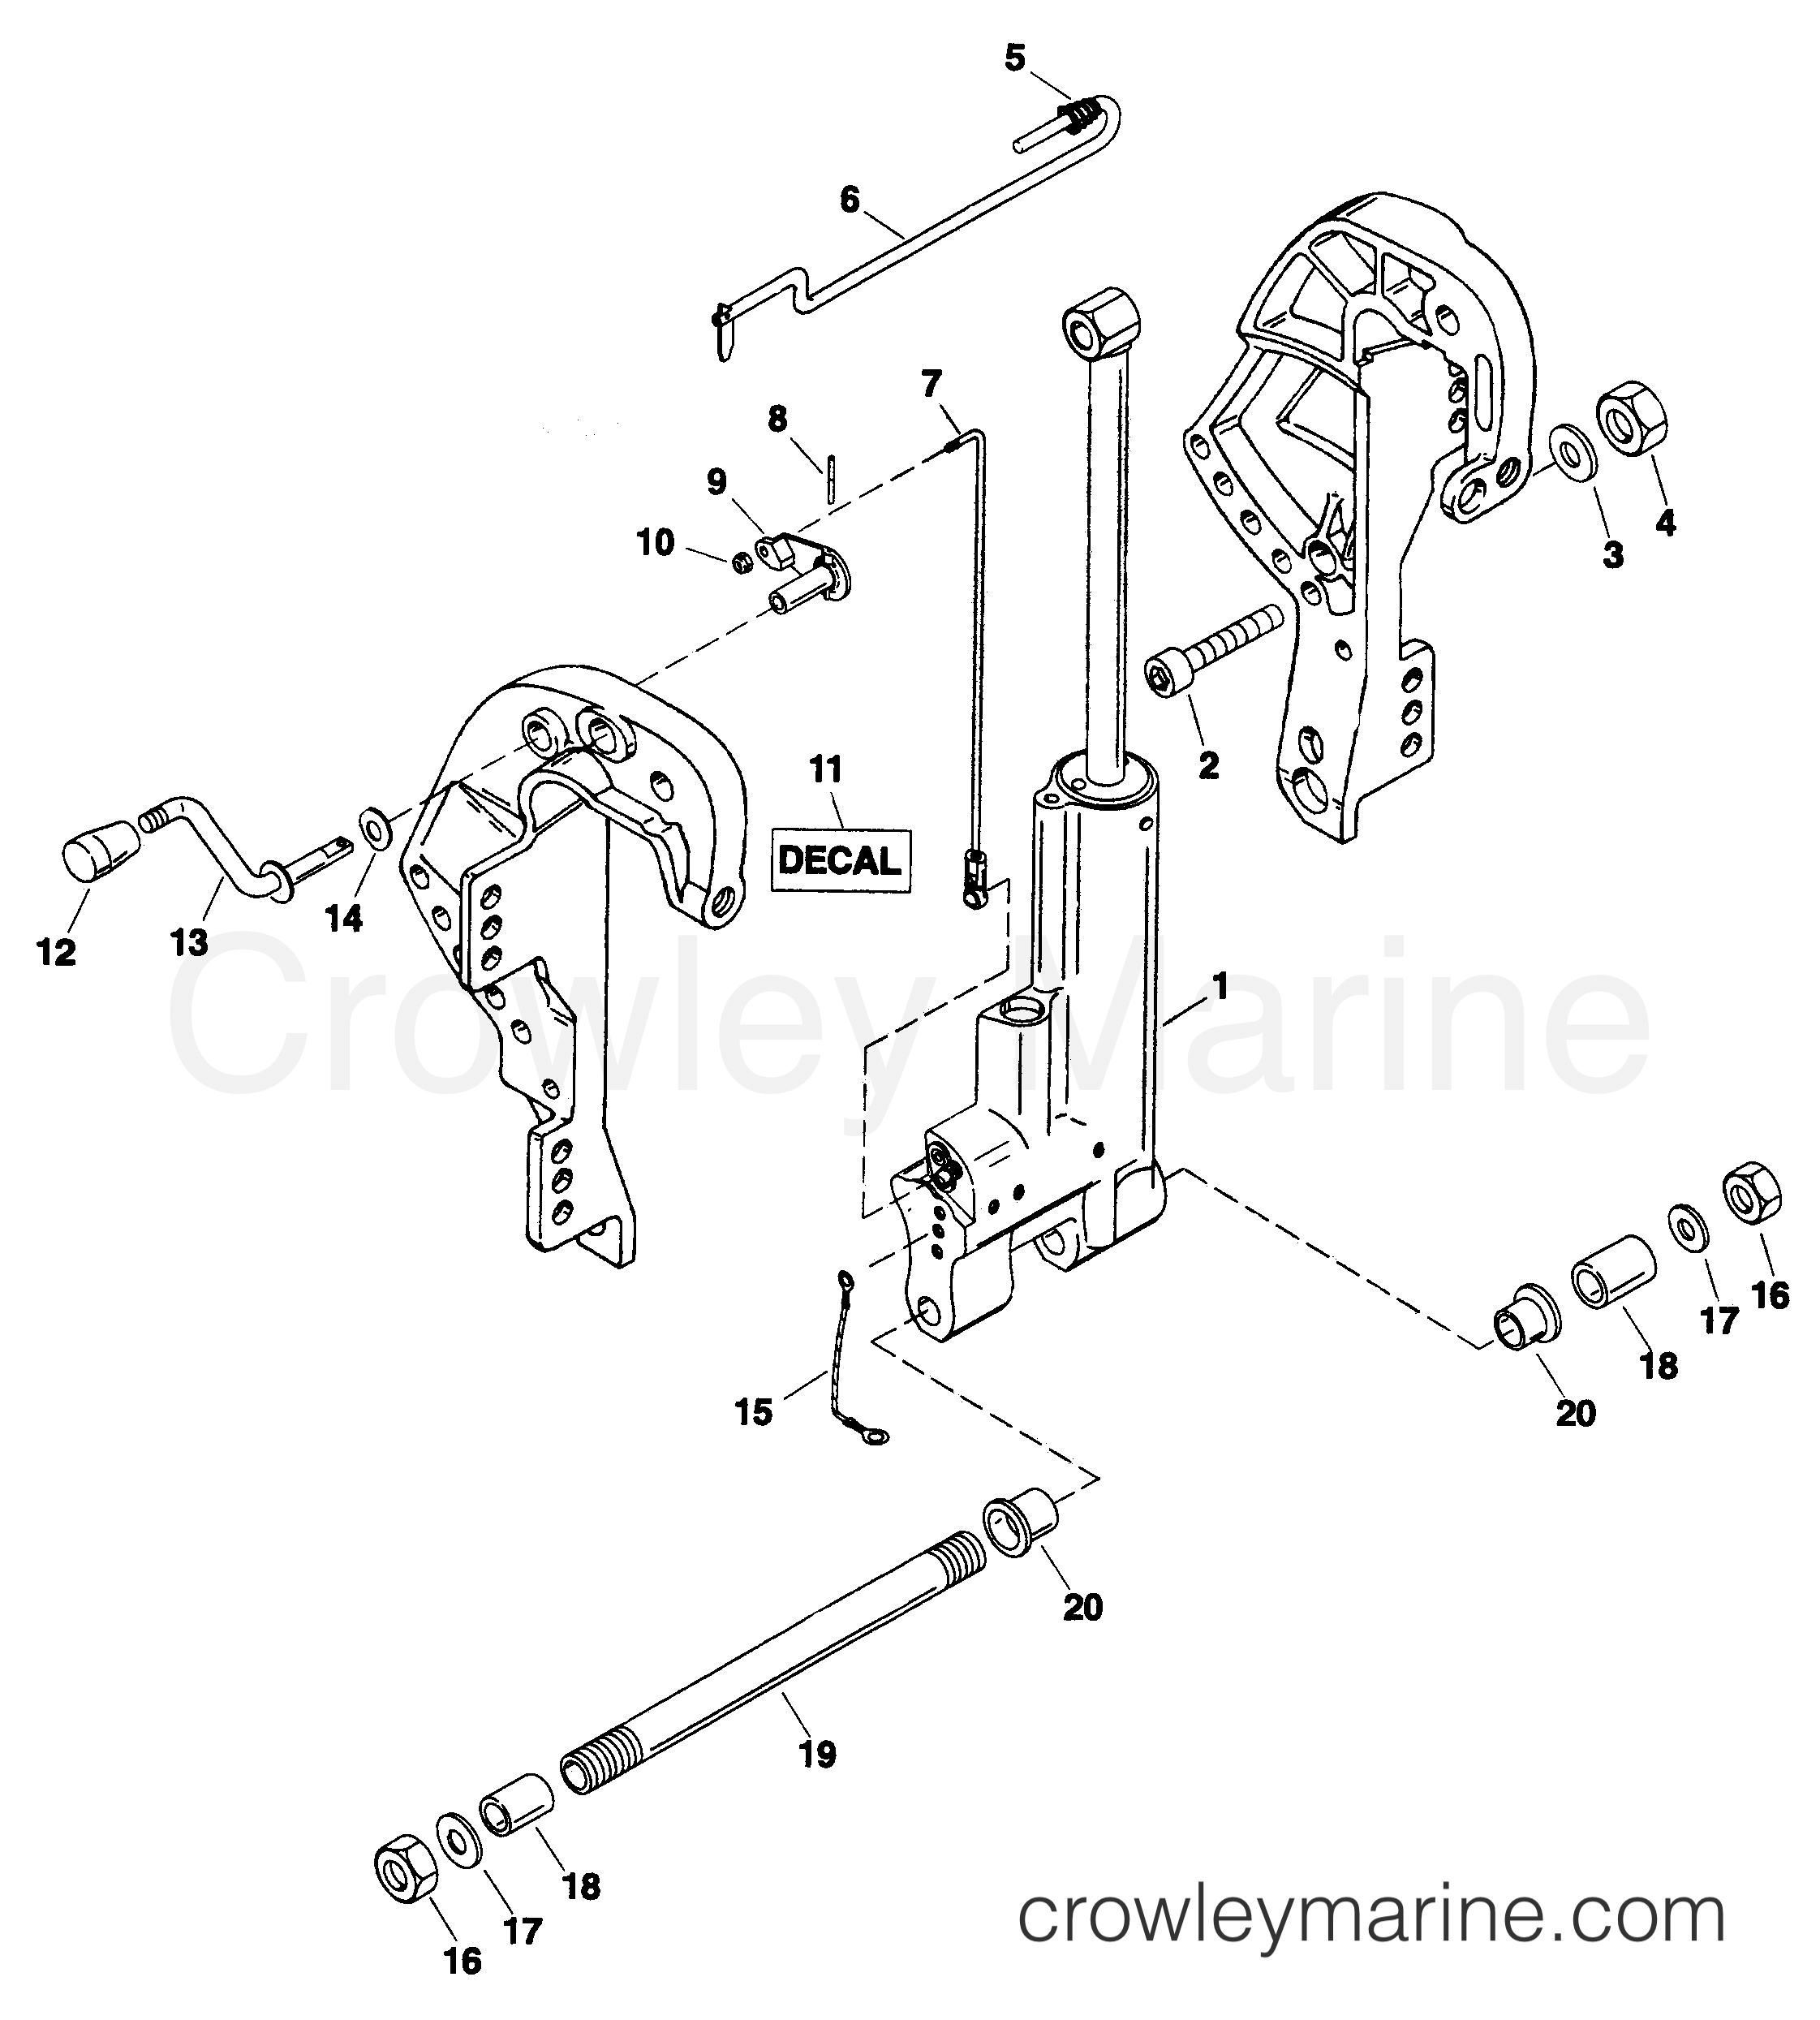 Mercury Force 120 Parts 140 Hp Wiring Diagram Trim Kit Gas Assist 828533a2 Serial Range Outboard Rh Crowleymarine Com 75